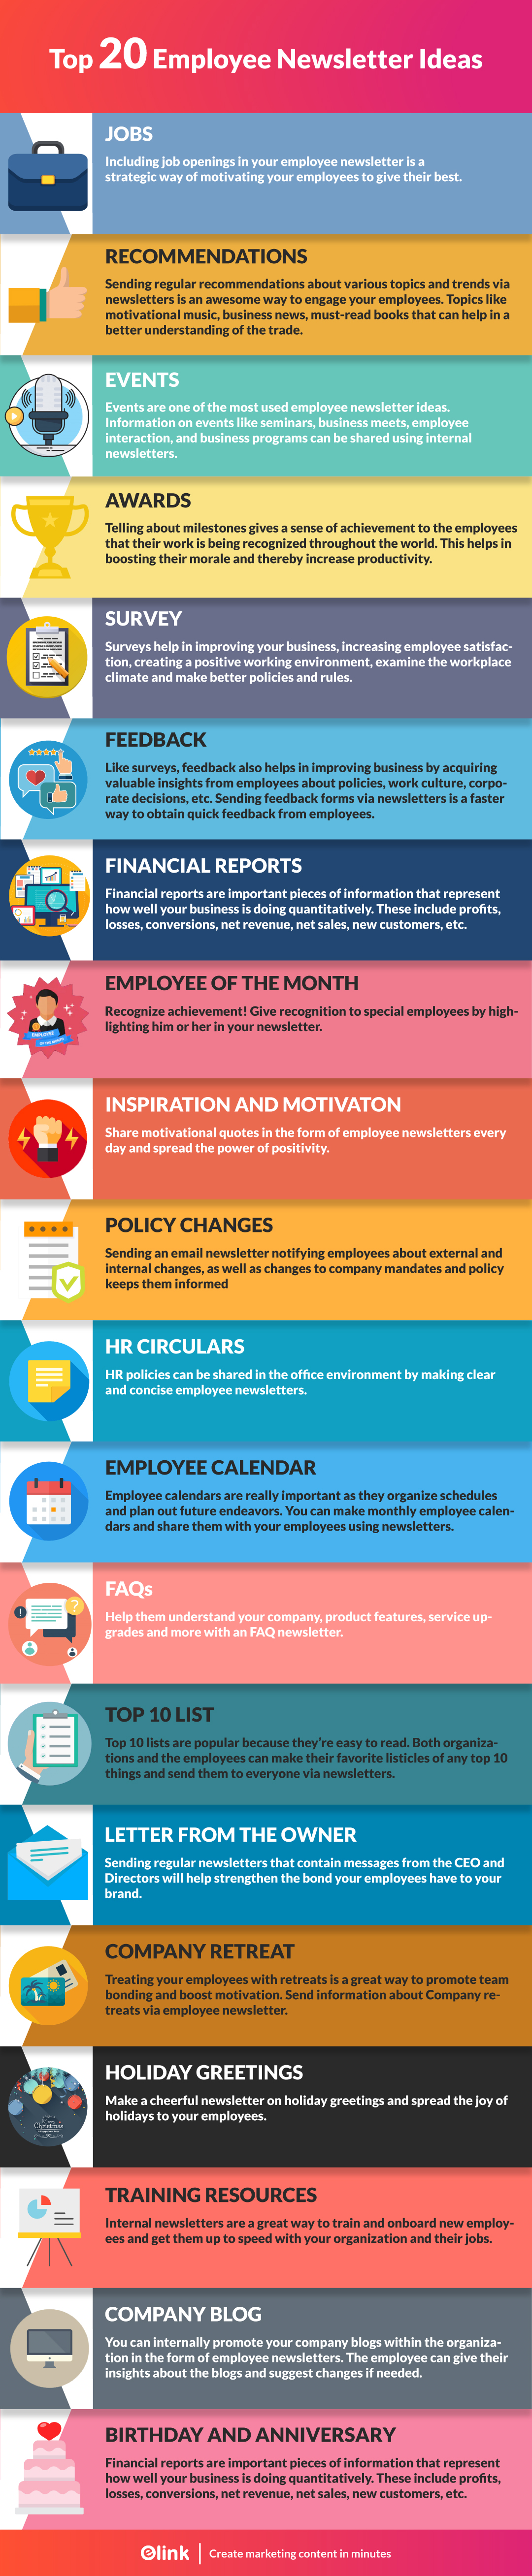 Employee newsletter ideas infographic